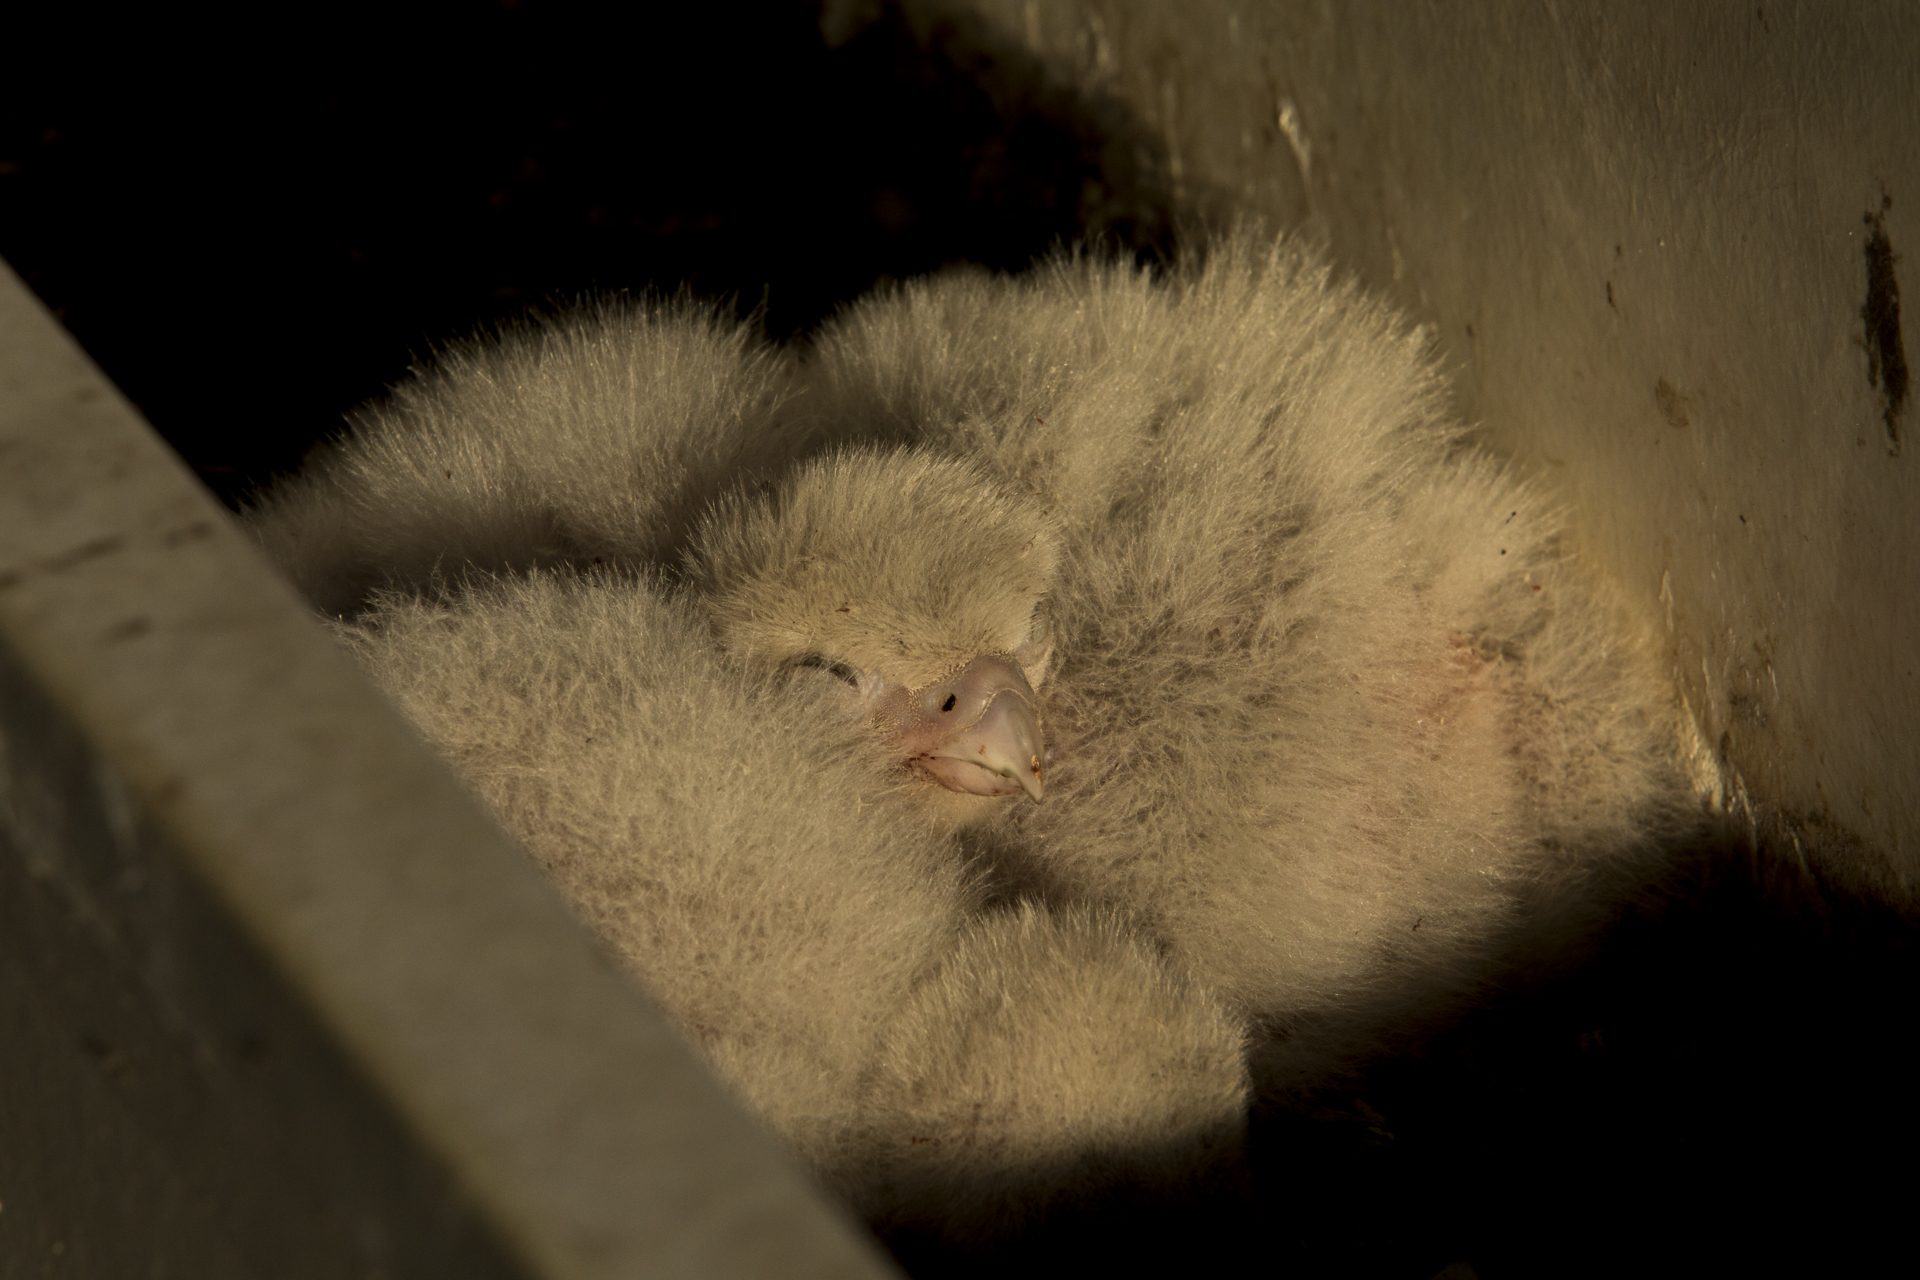 Once large enough the chicks could group together to keep warm, instead of being constantly brooded.